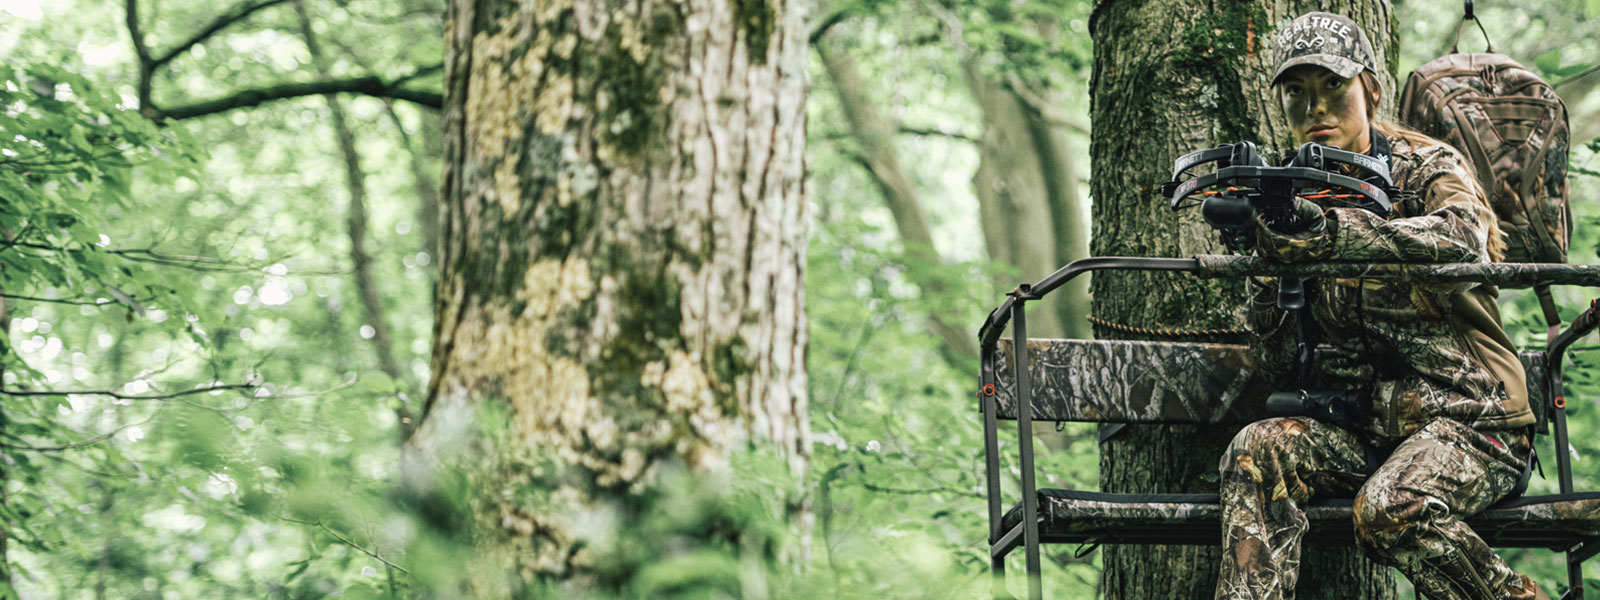 A female hunter wearing camouflage hunting apparel looks out from her ladder stand while holding a crossbow.